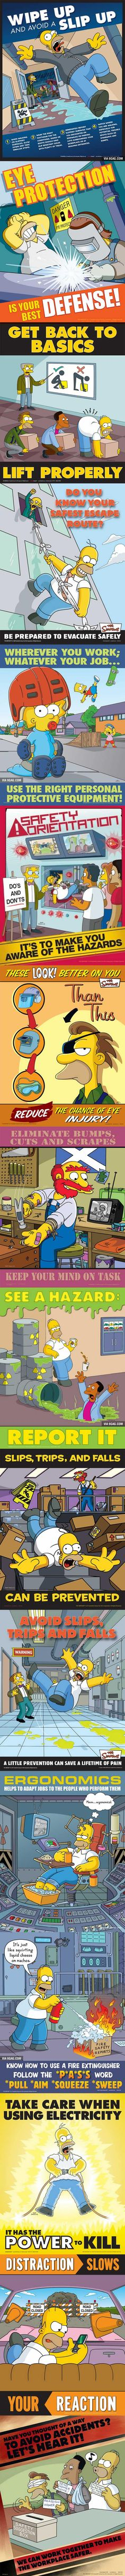 standard A 35 Simpson's Safety Posters (Part 1) - 9GAG